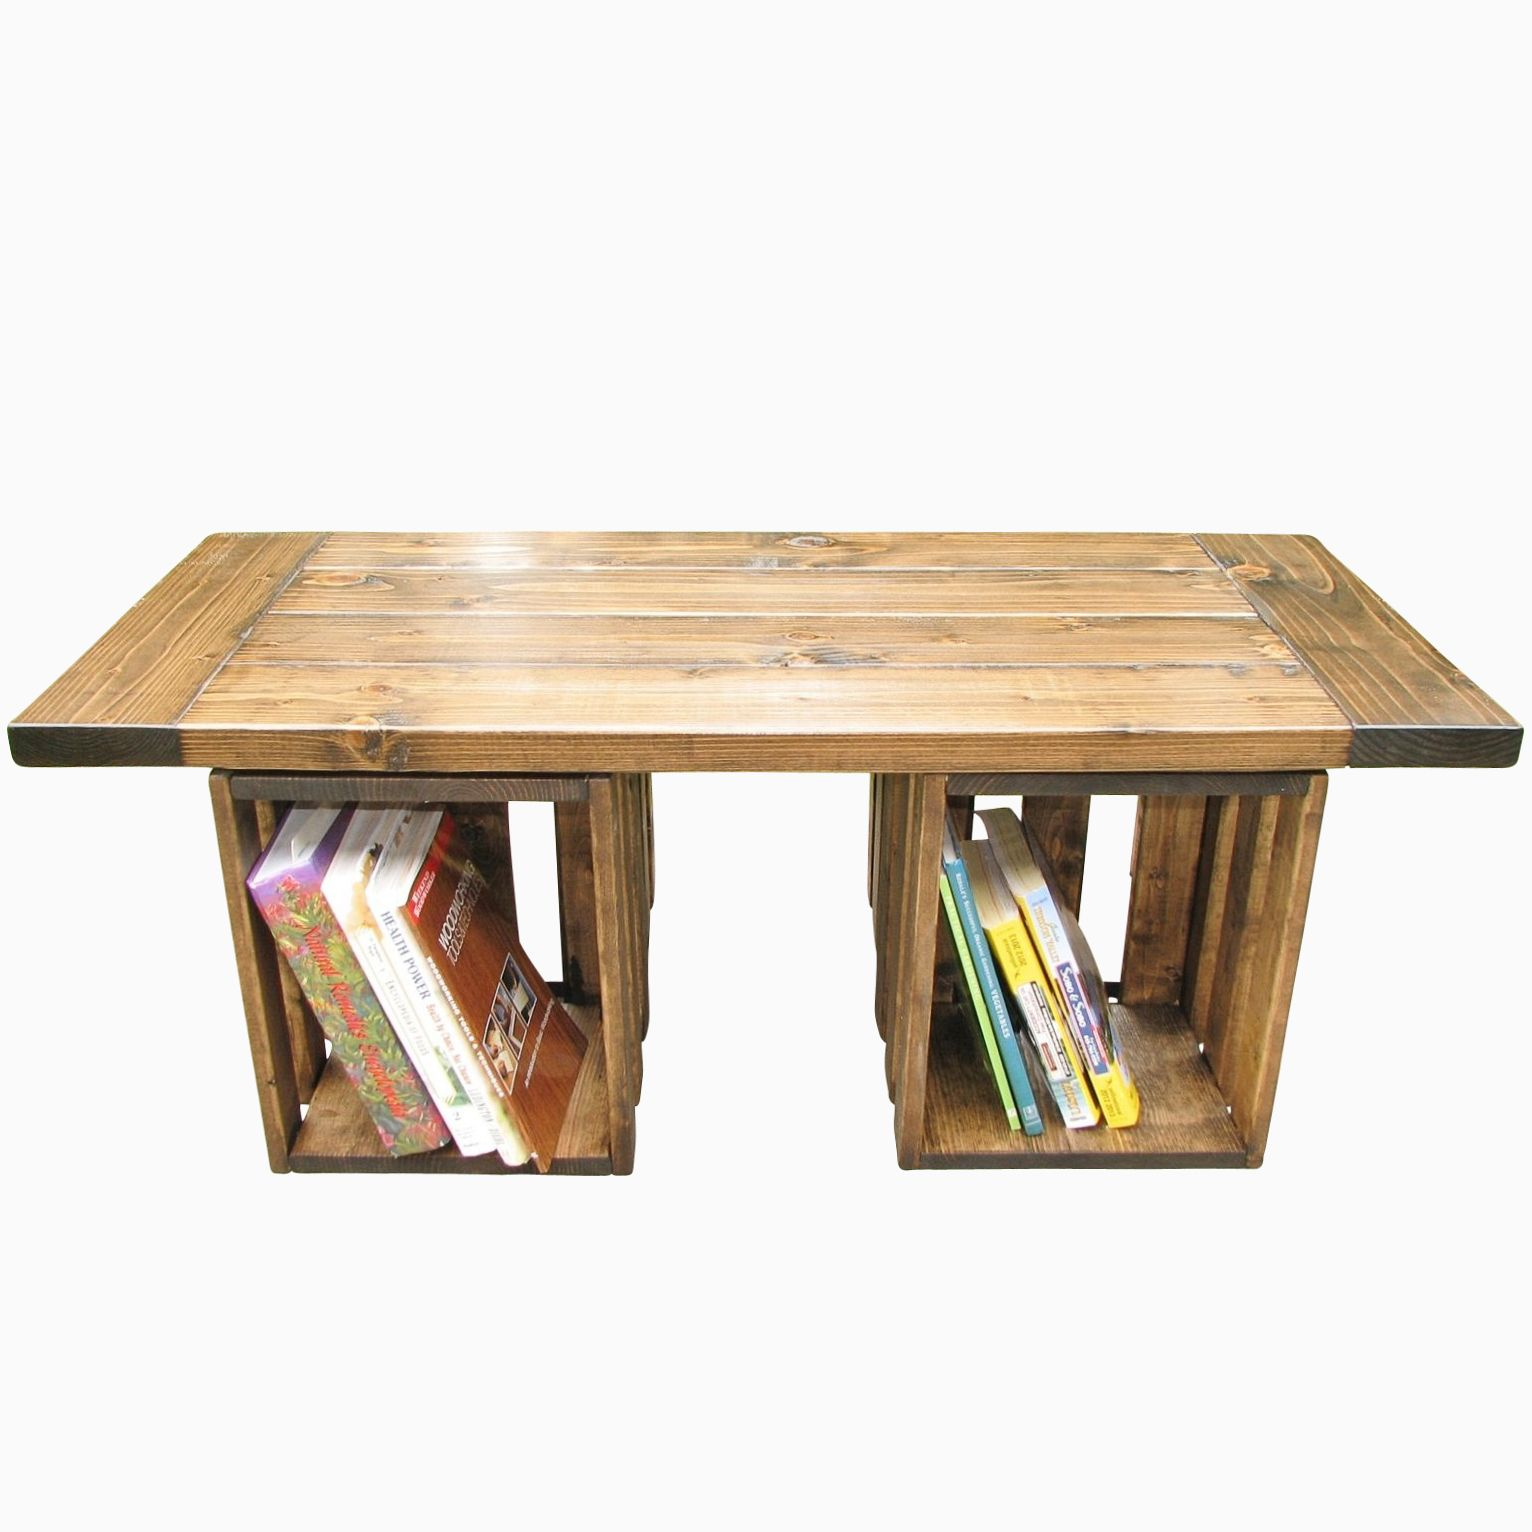 Buy a Hand Made Reclaimed Wood Farmhouse Style Coffee Table made